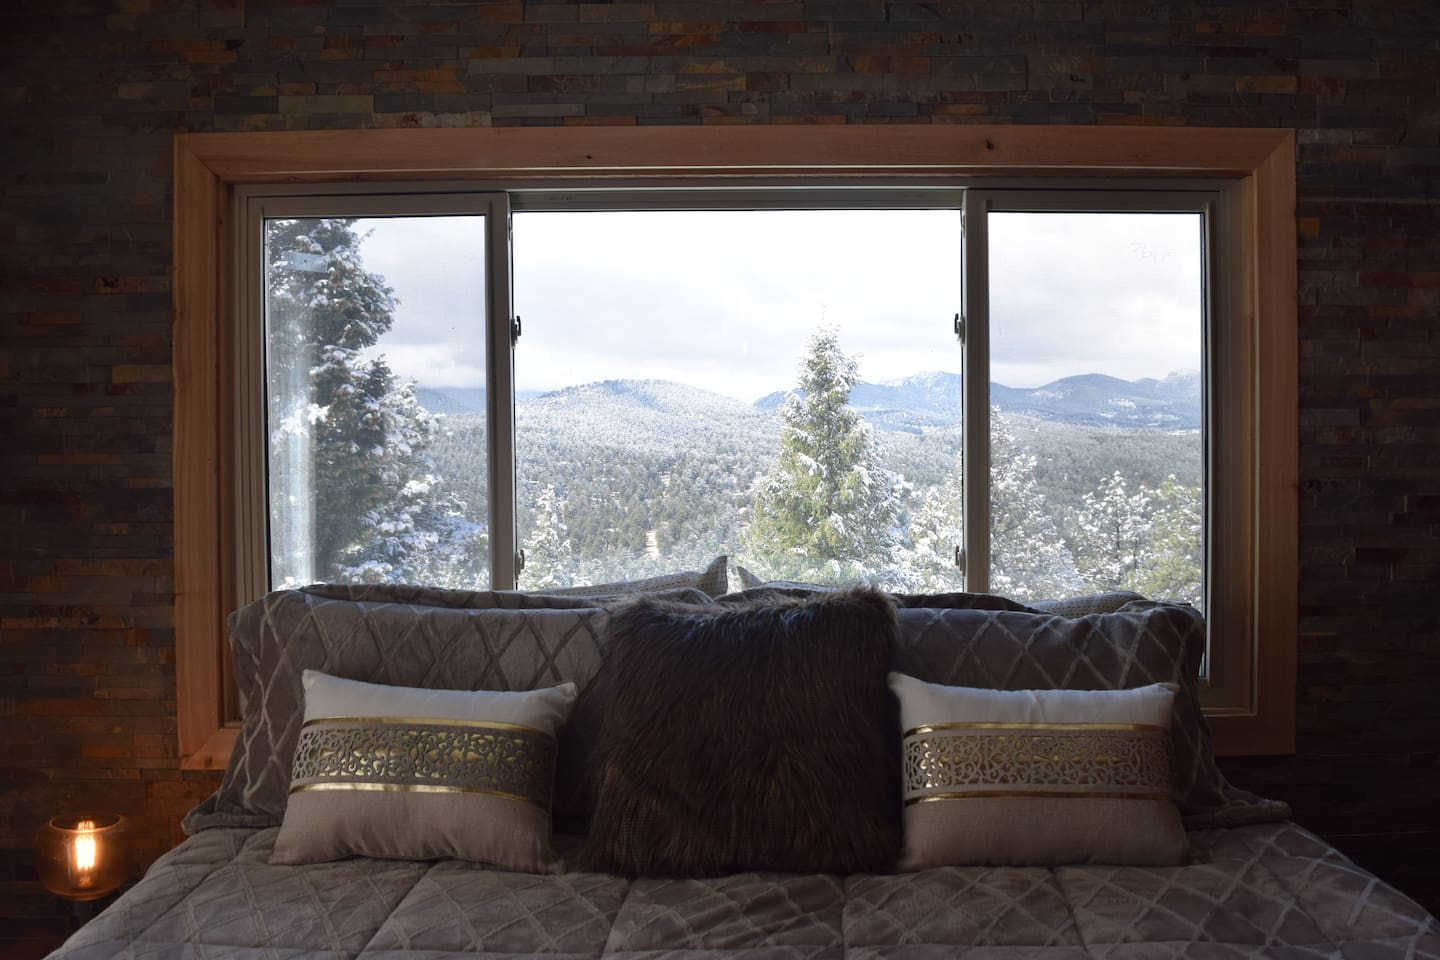 The king size bed sits in front of a picture window...with an amazing view!